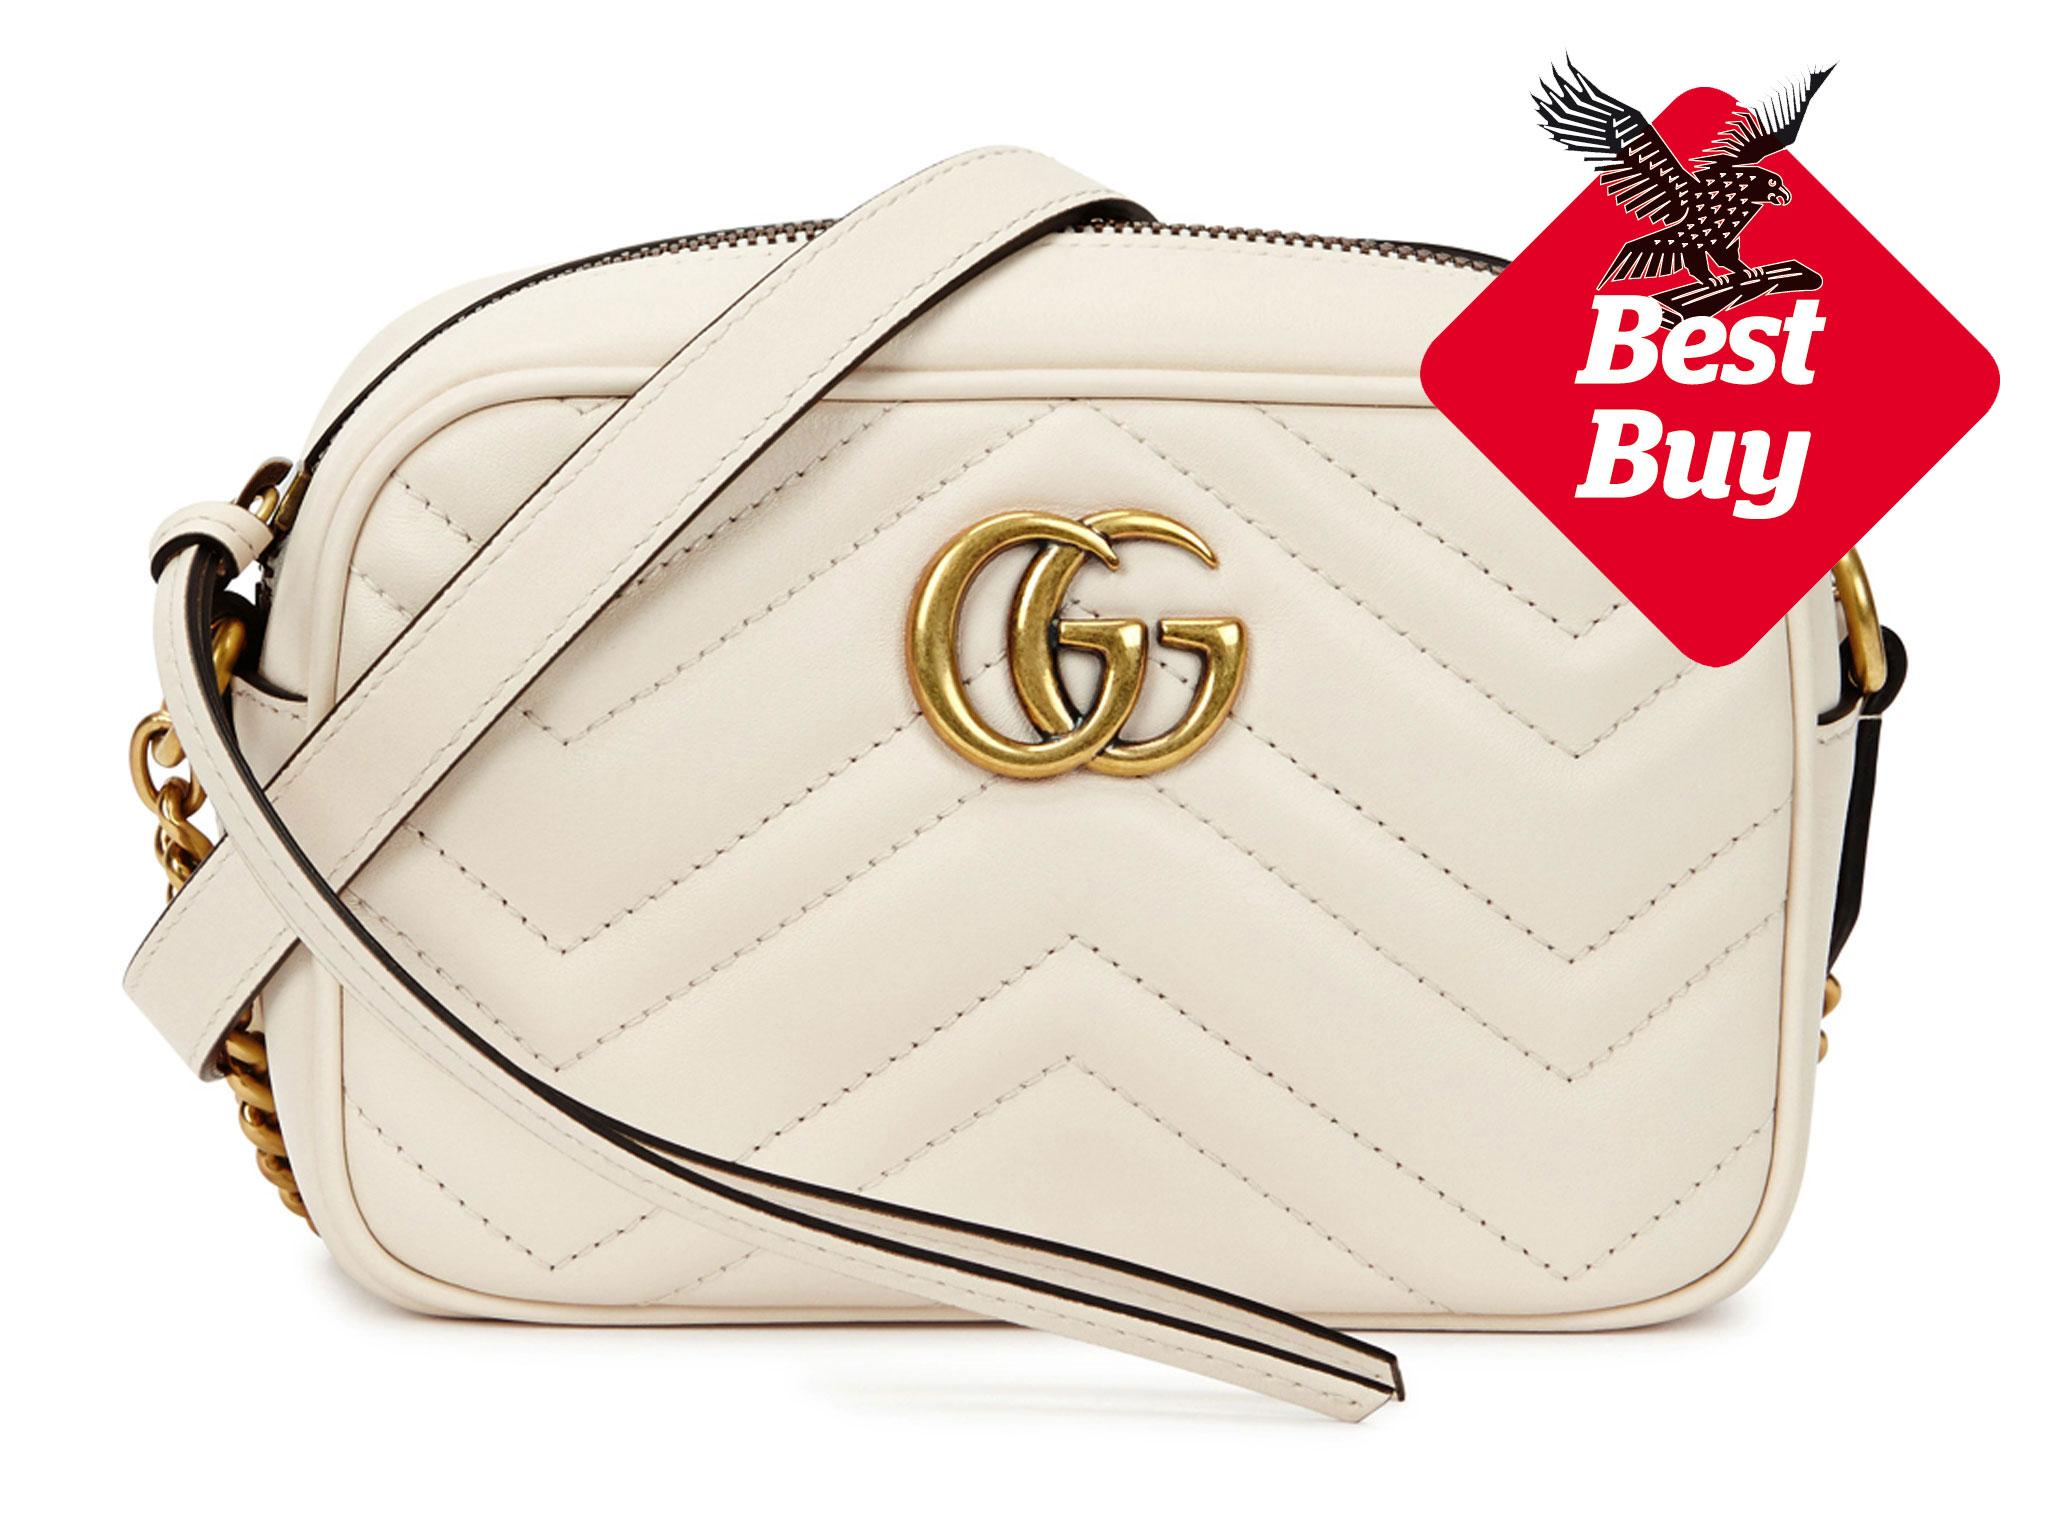 6c6179043d7 Gucci Marmont Mini Shoulder Bag: £640, Harvey Nichols